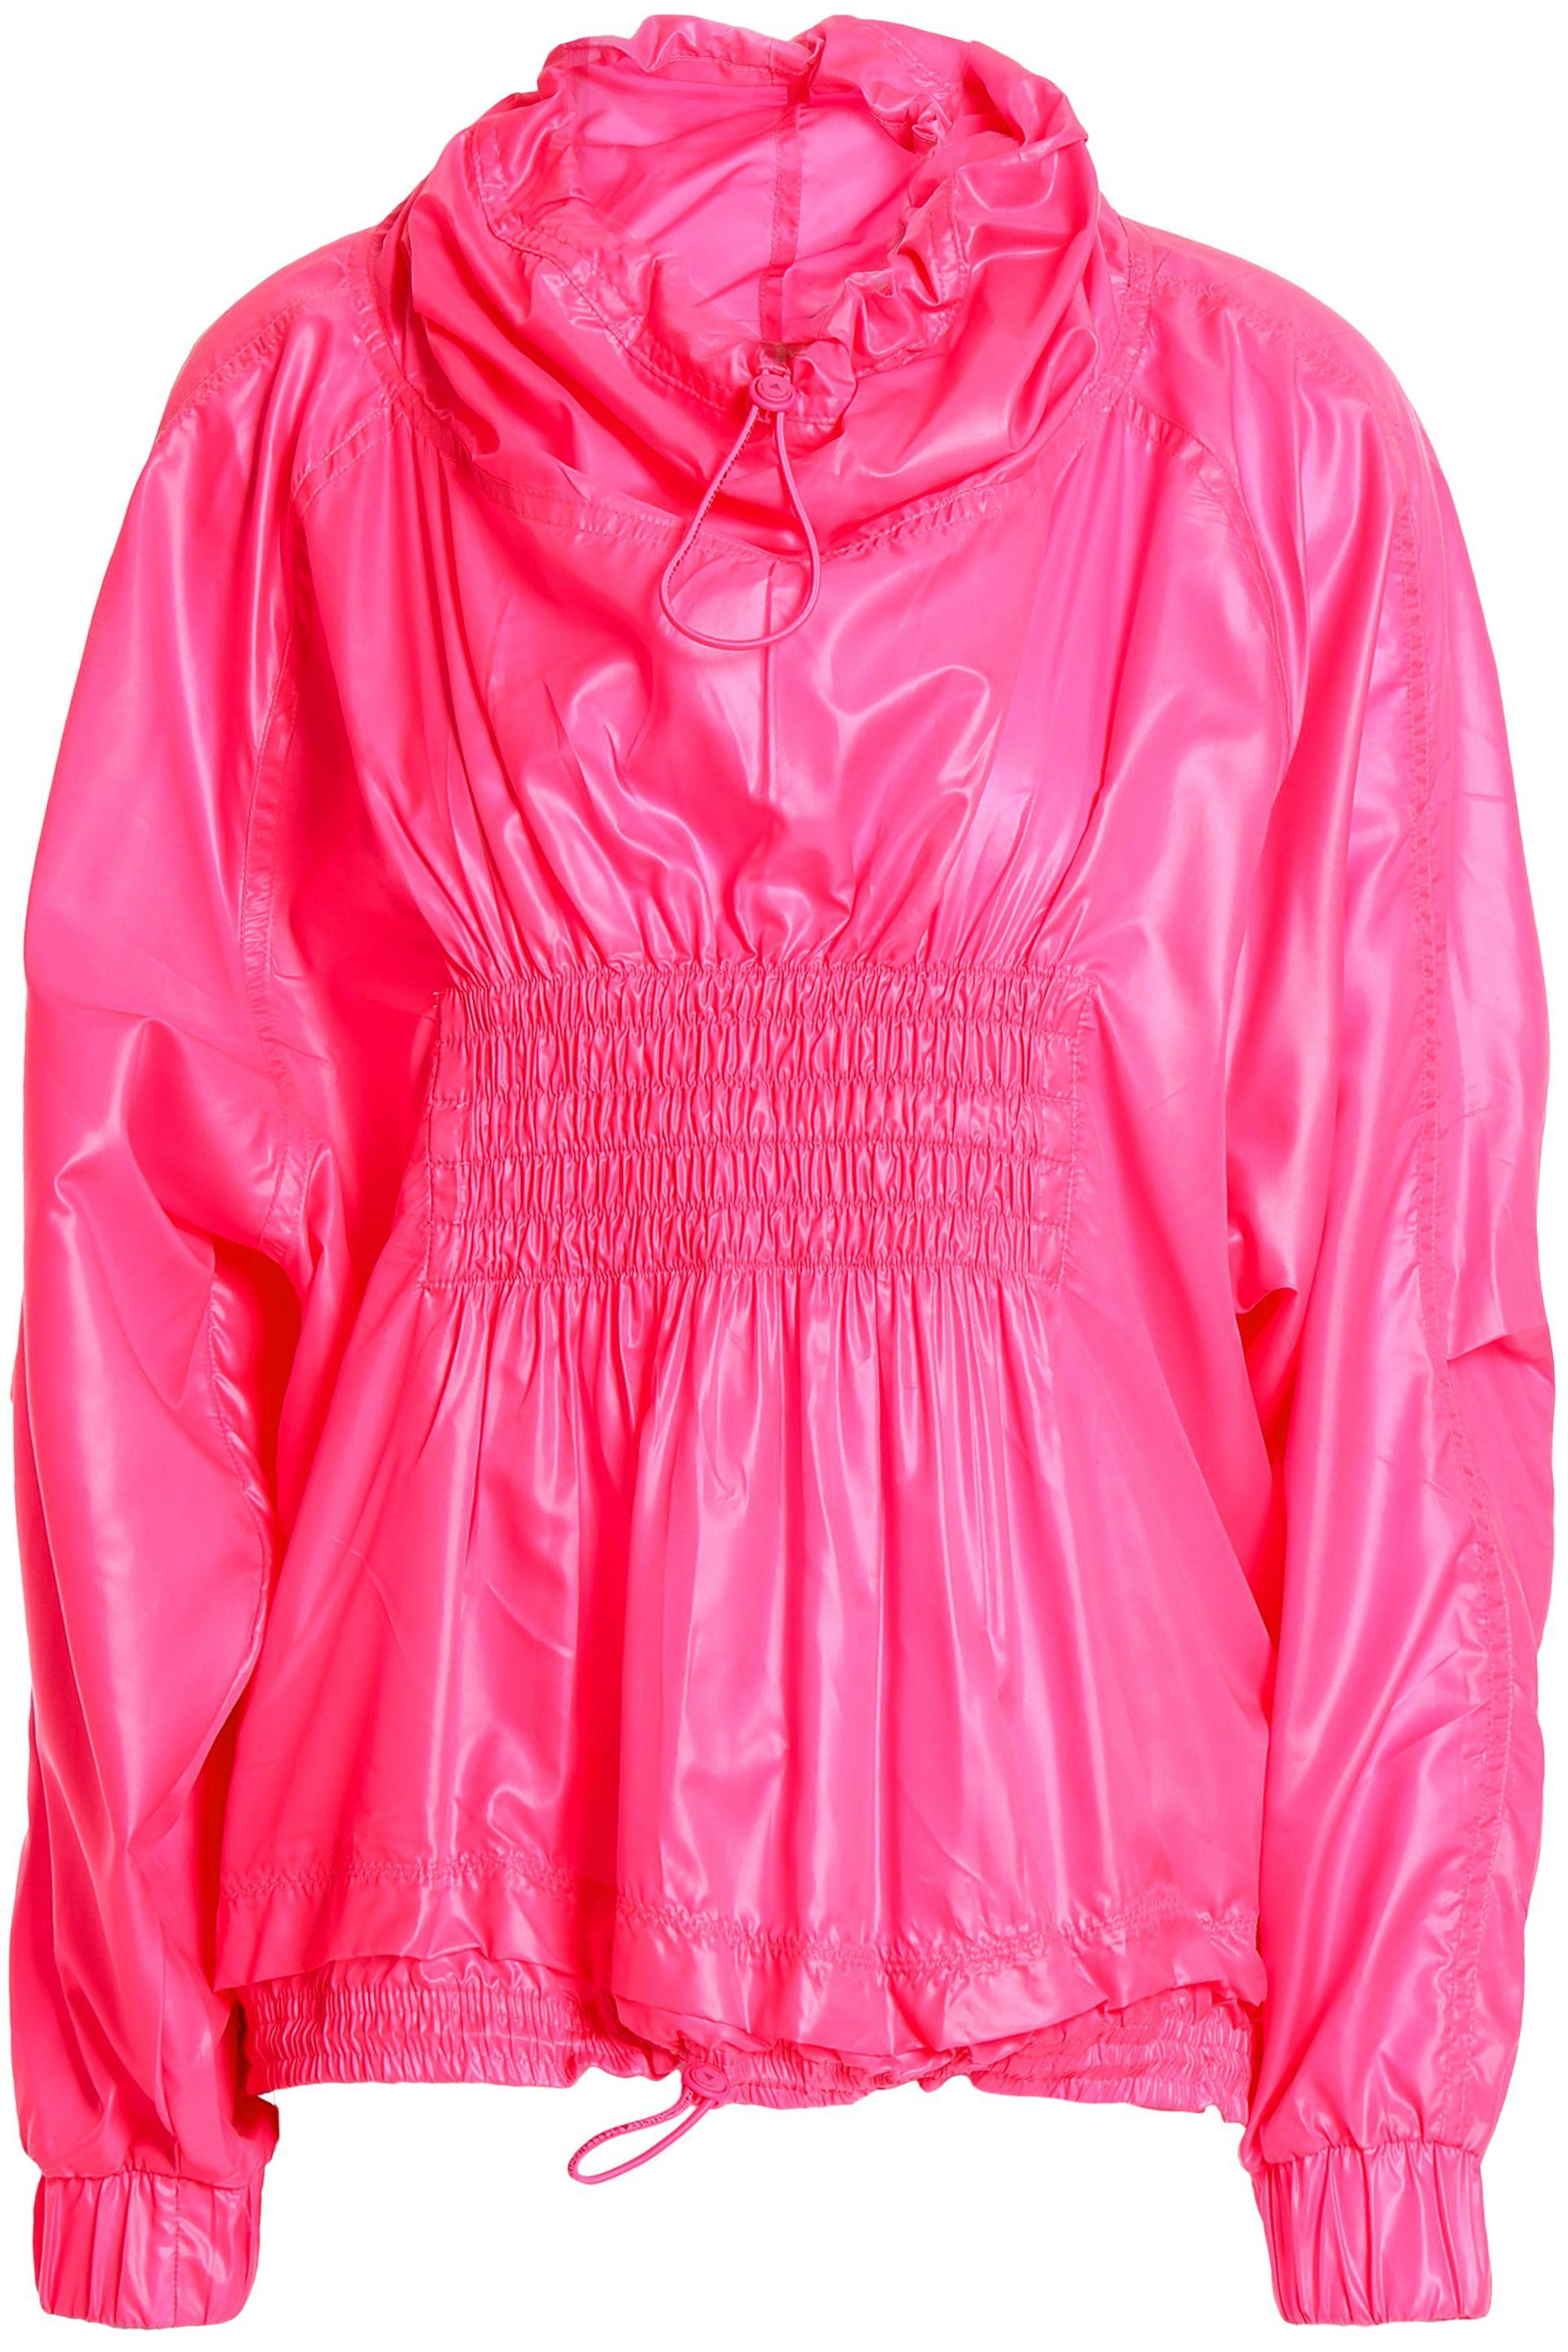 0f6aa5781fc0 adidas By Stella McCartney. Women s Woman Shirred Shell Jacket Bright Pink